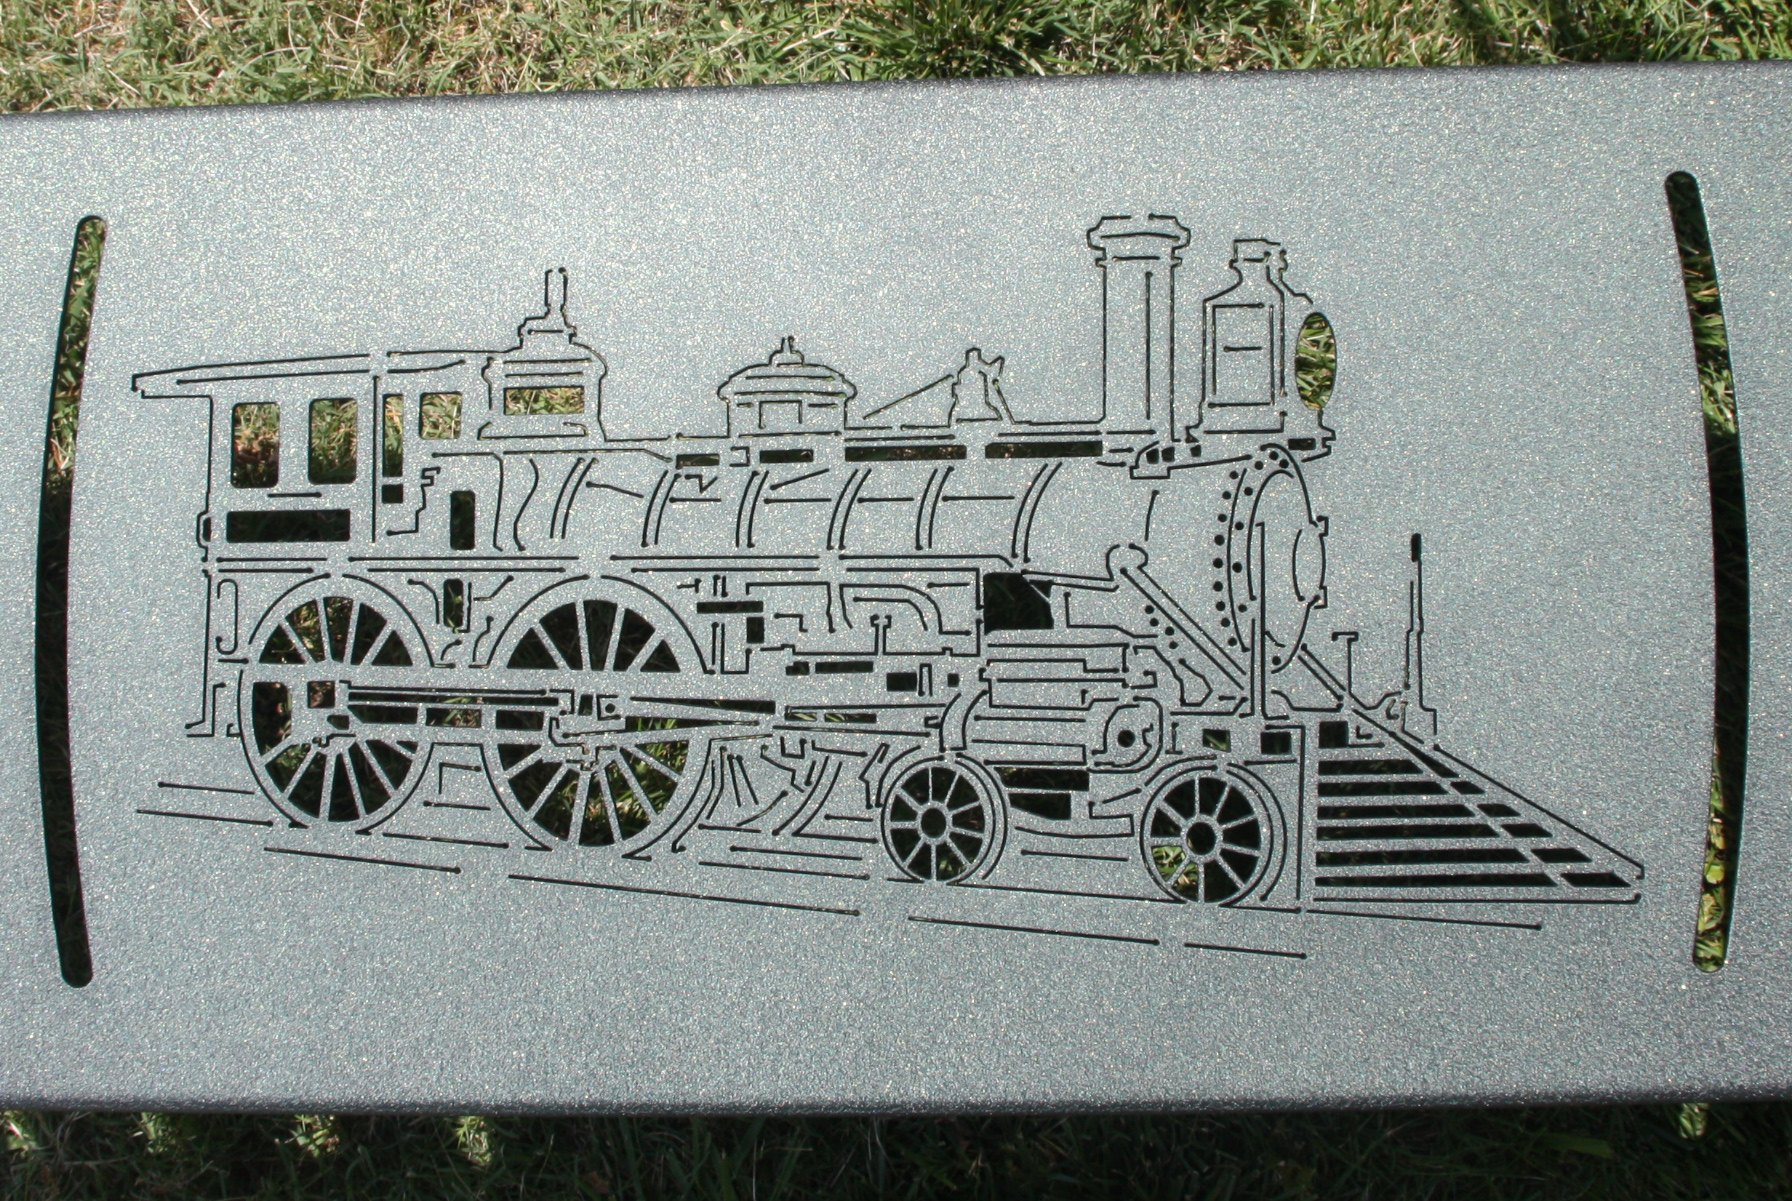 One of the train benches